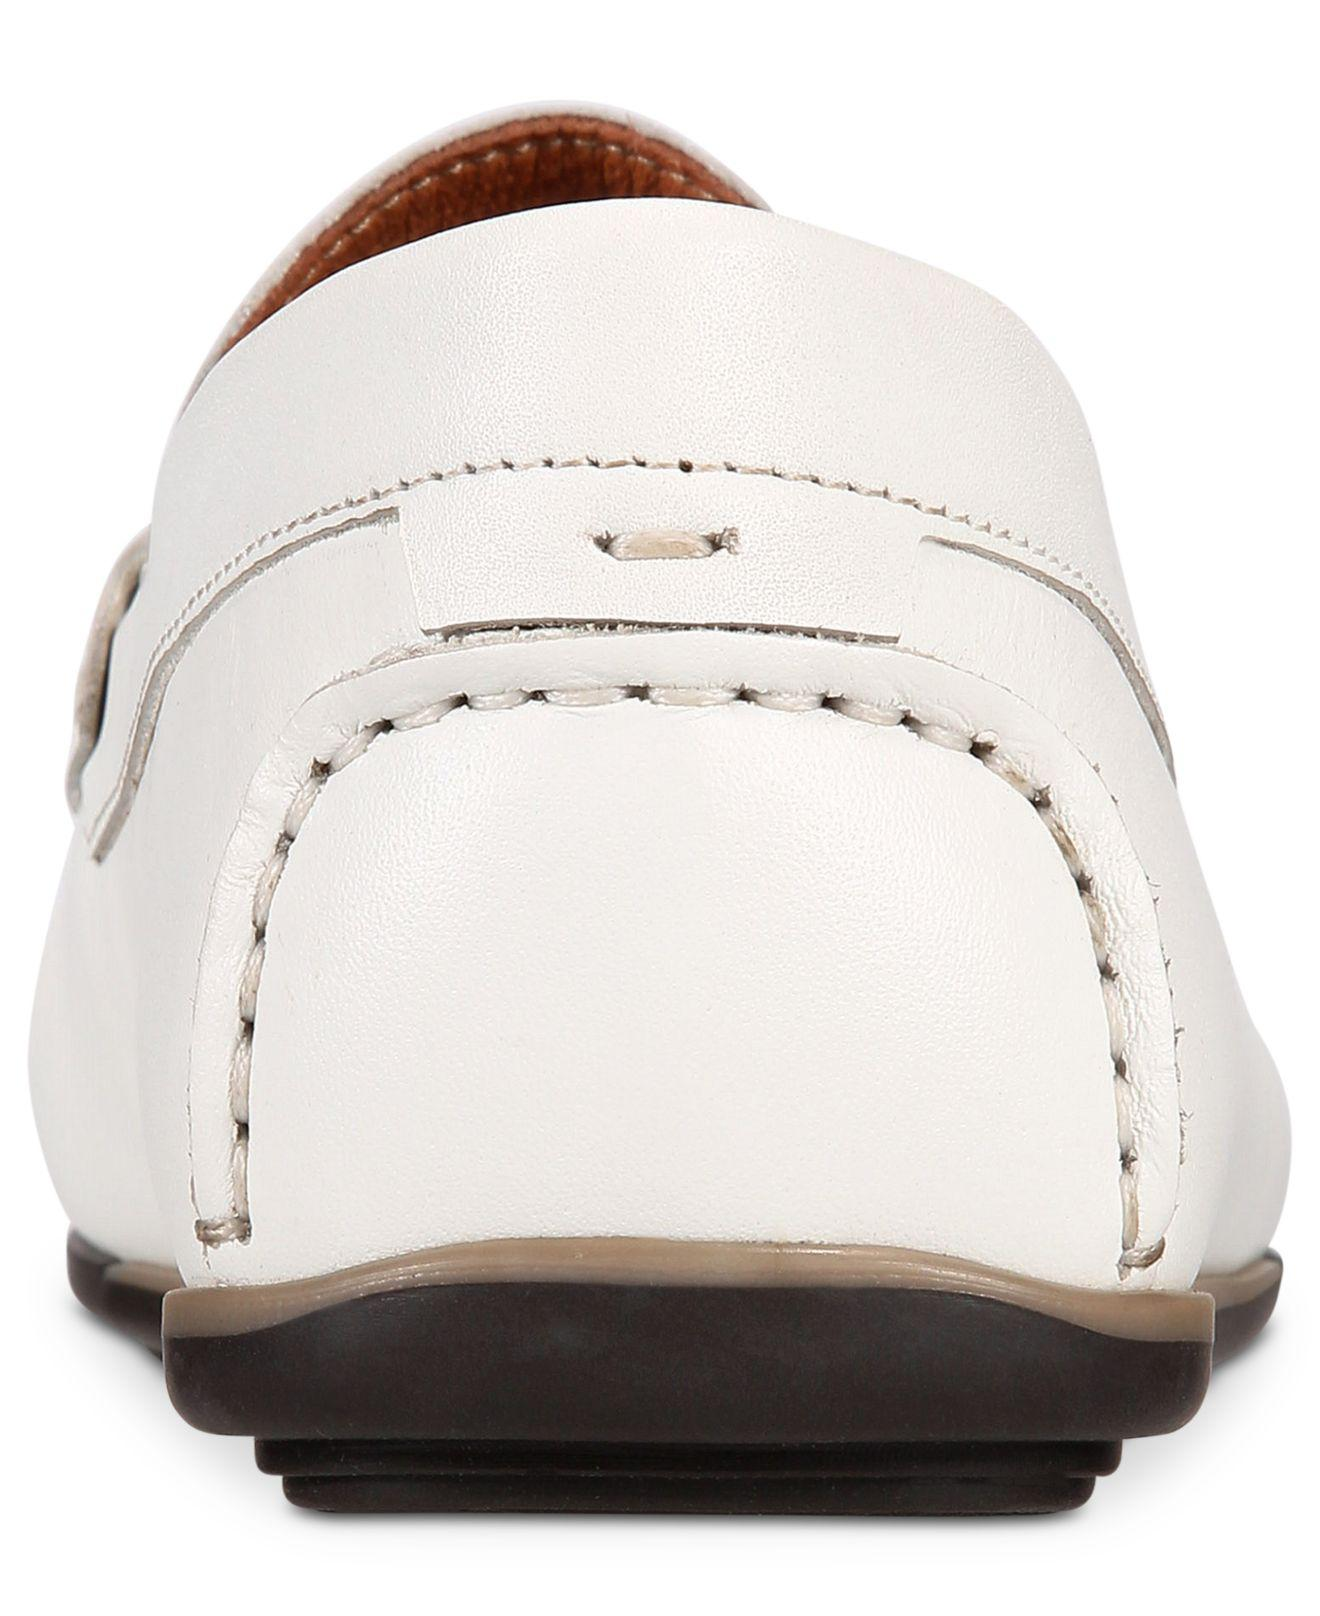 711a8d947a45c Lyst - Alfani Men s Will Penny Drivers in White for Men